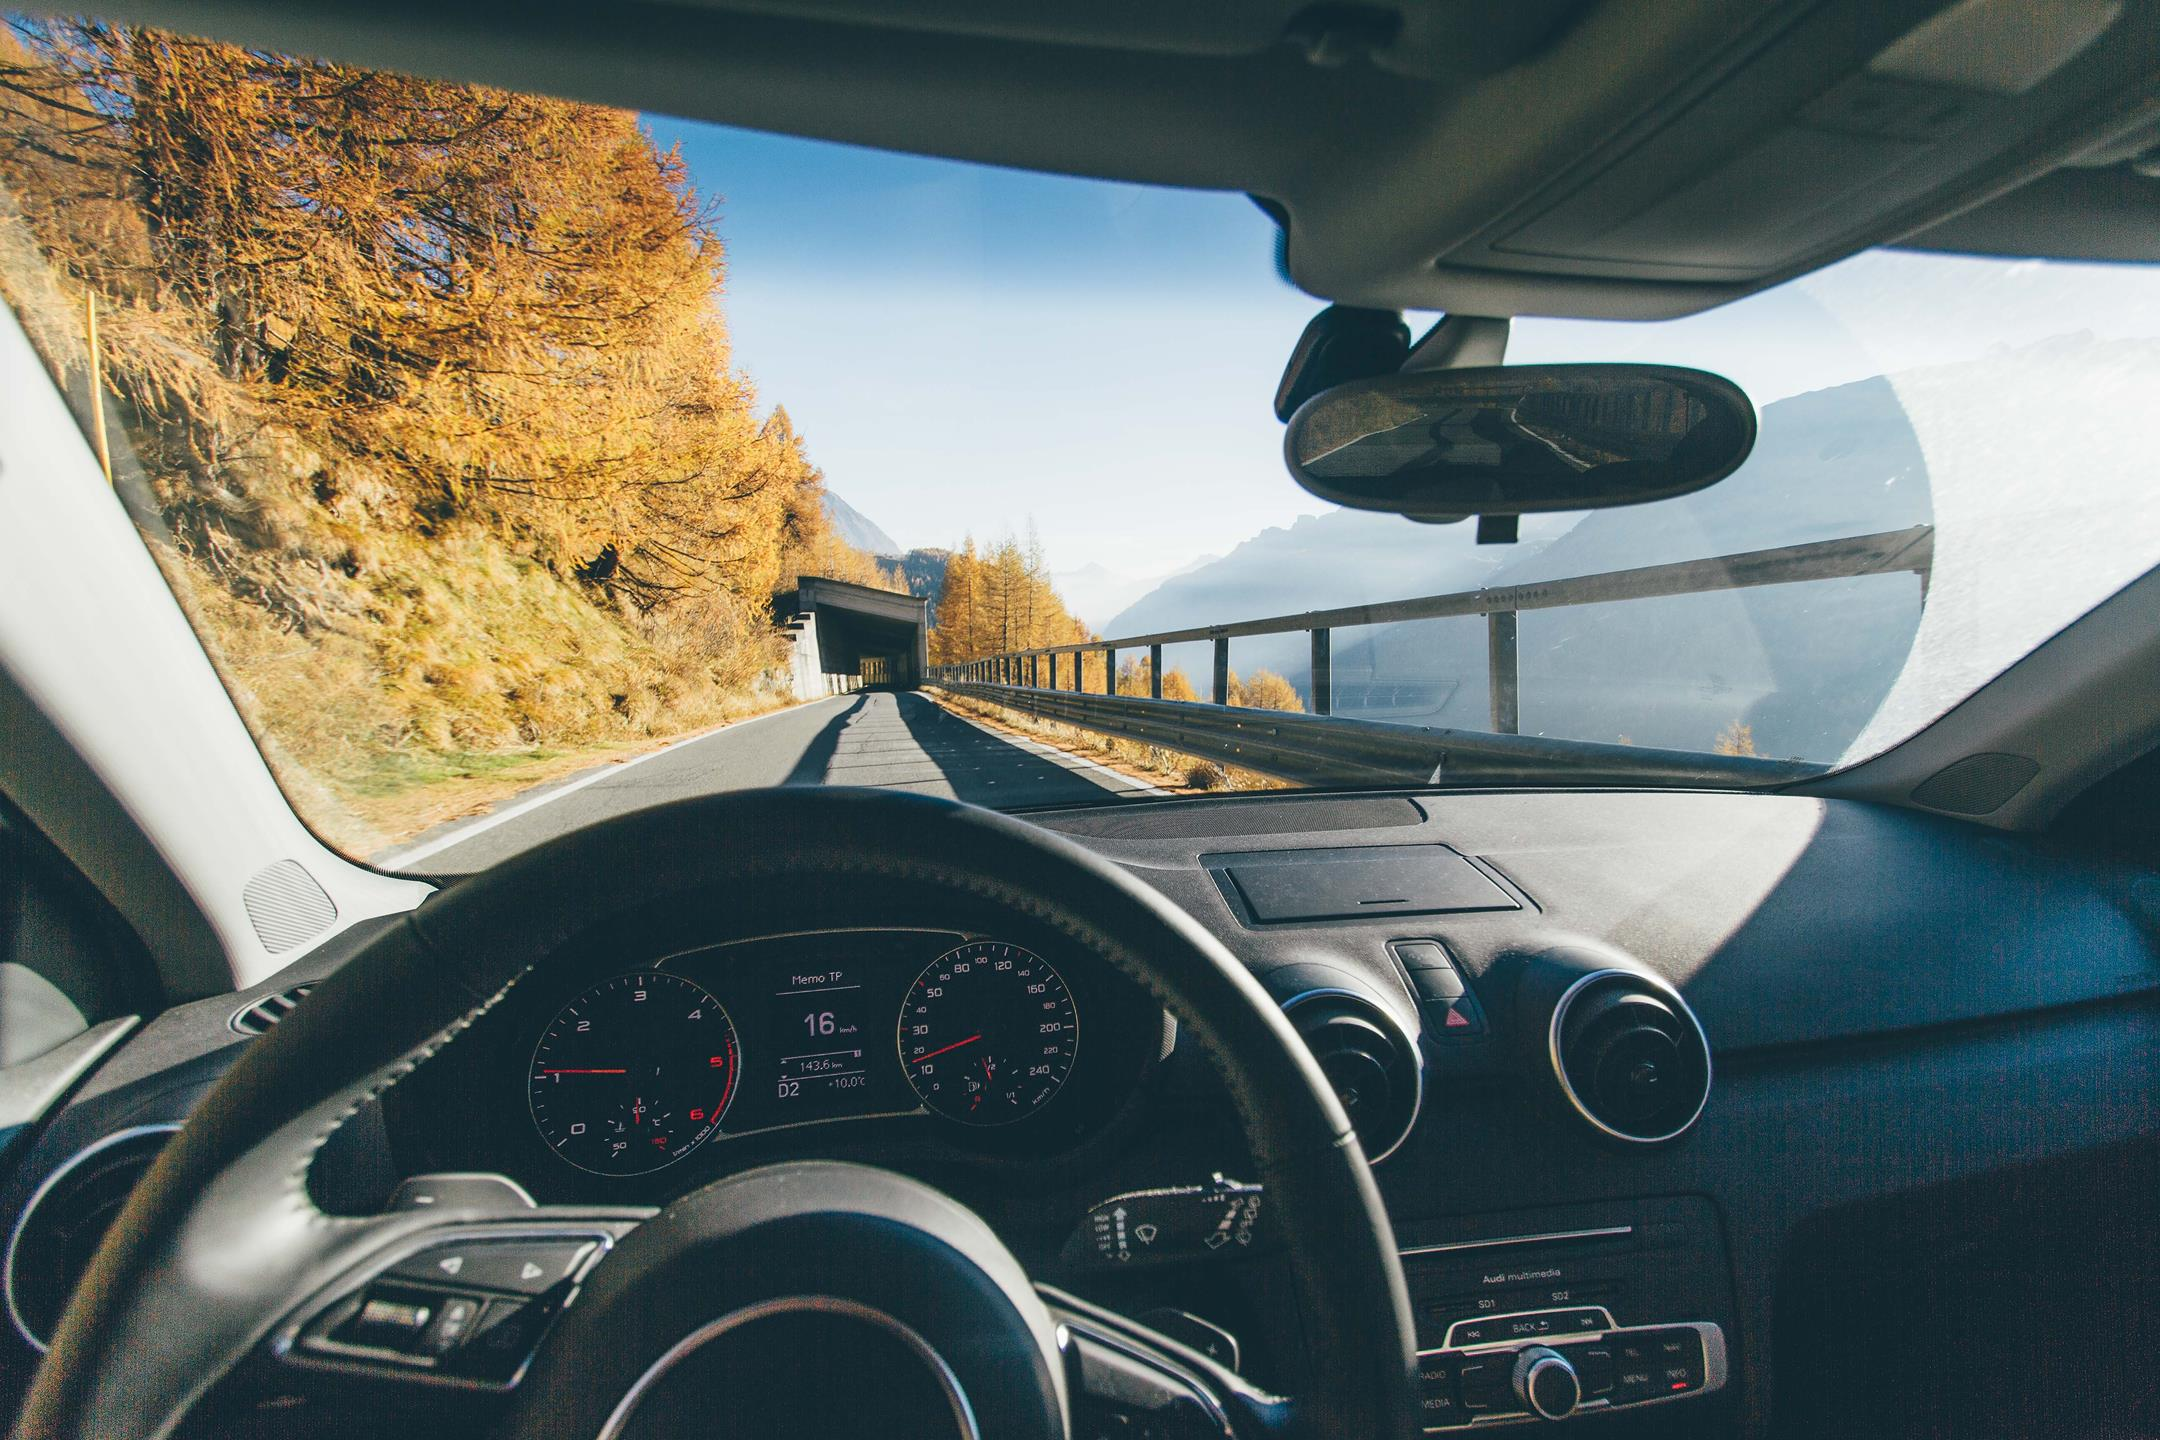 Embedded Testing Solution For In-car Driver Applications